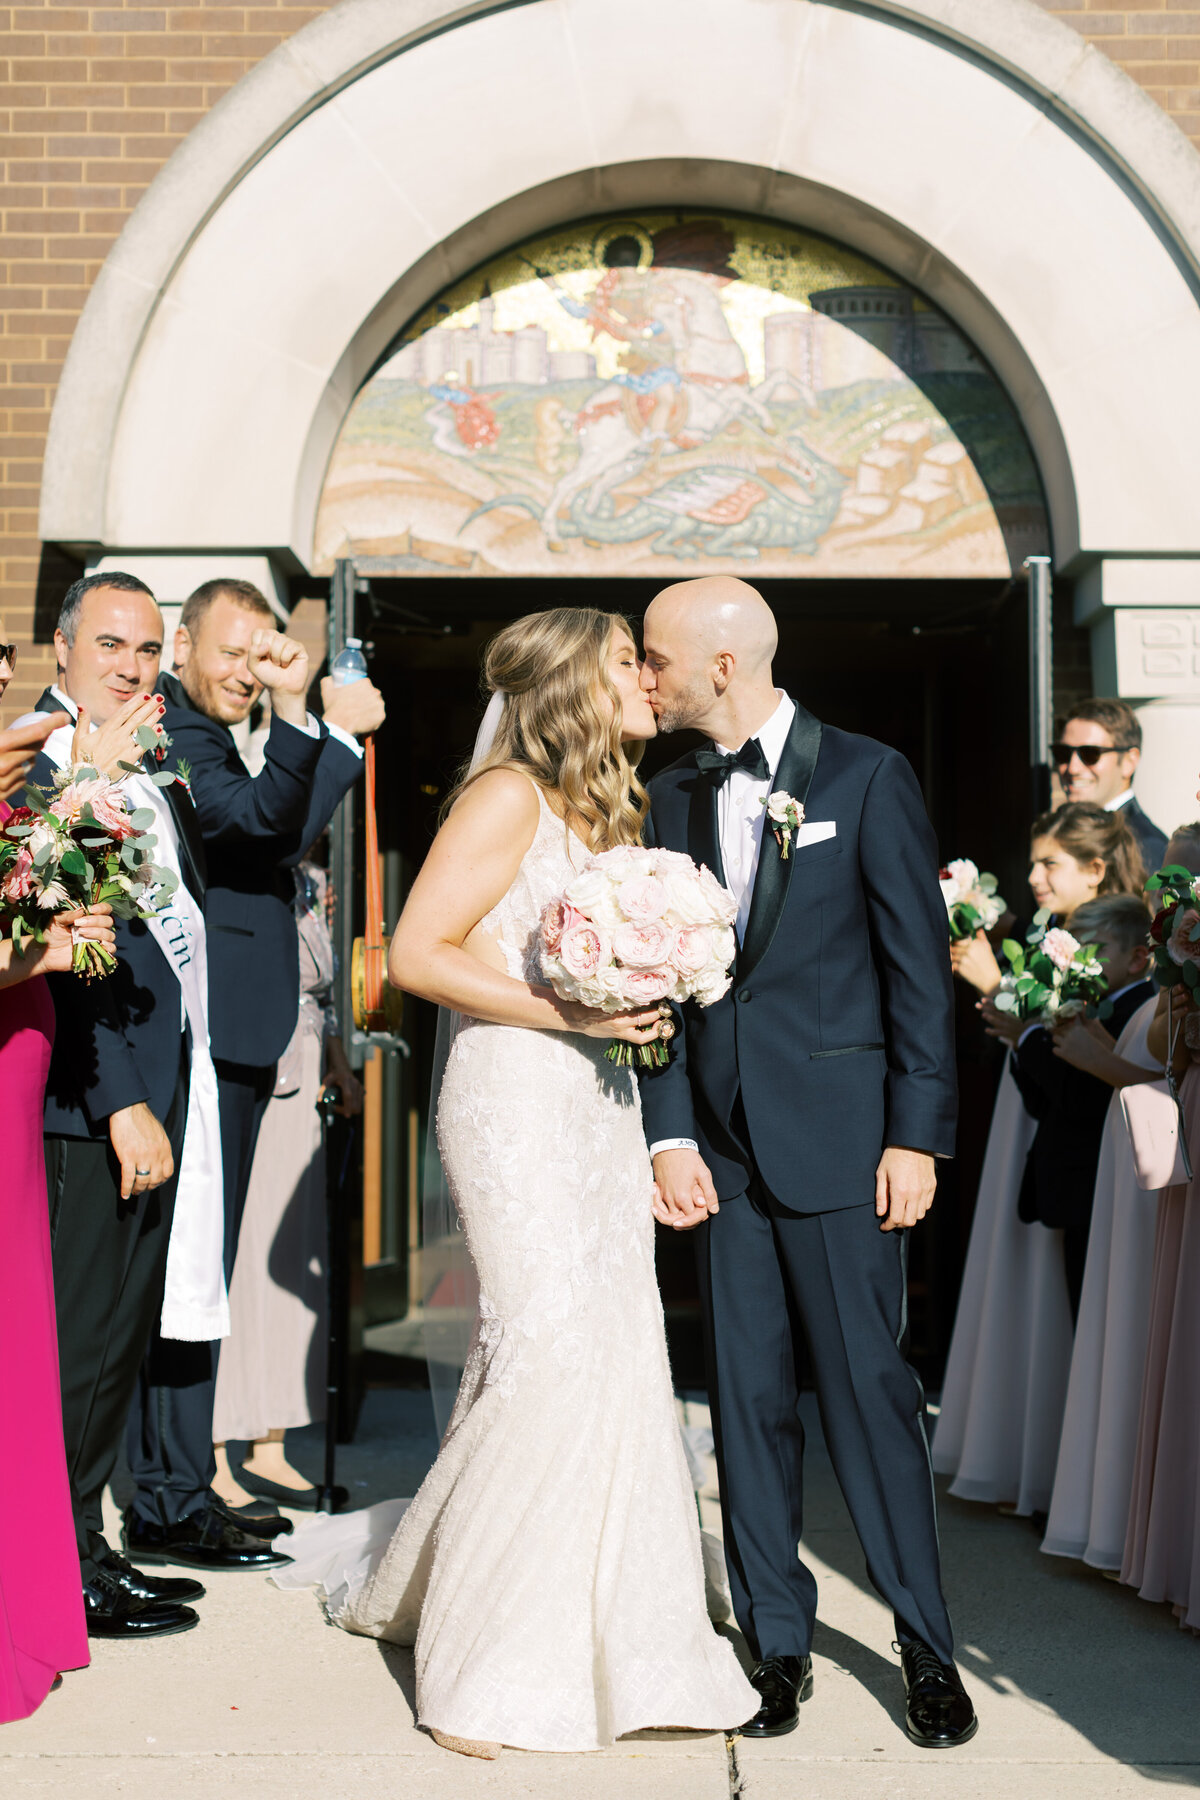 TiffaneyChildsPhotography-ChicagoWeddingPhotographer-Andrea&Pasquale-St.GeorgeWedding-Ceremony-213